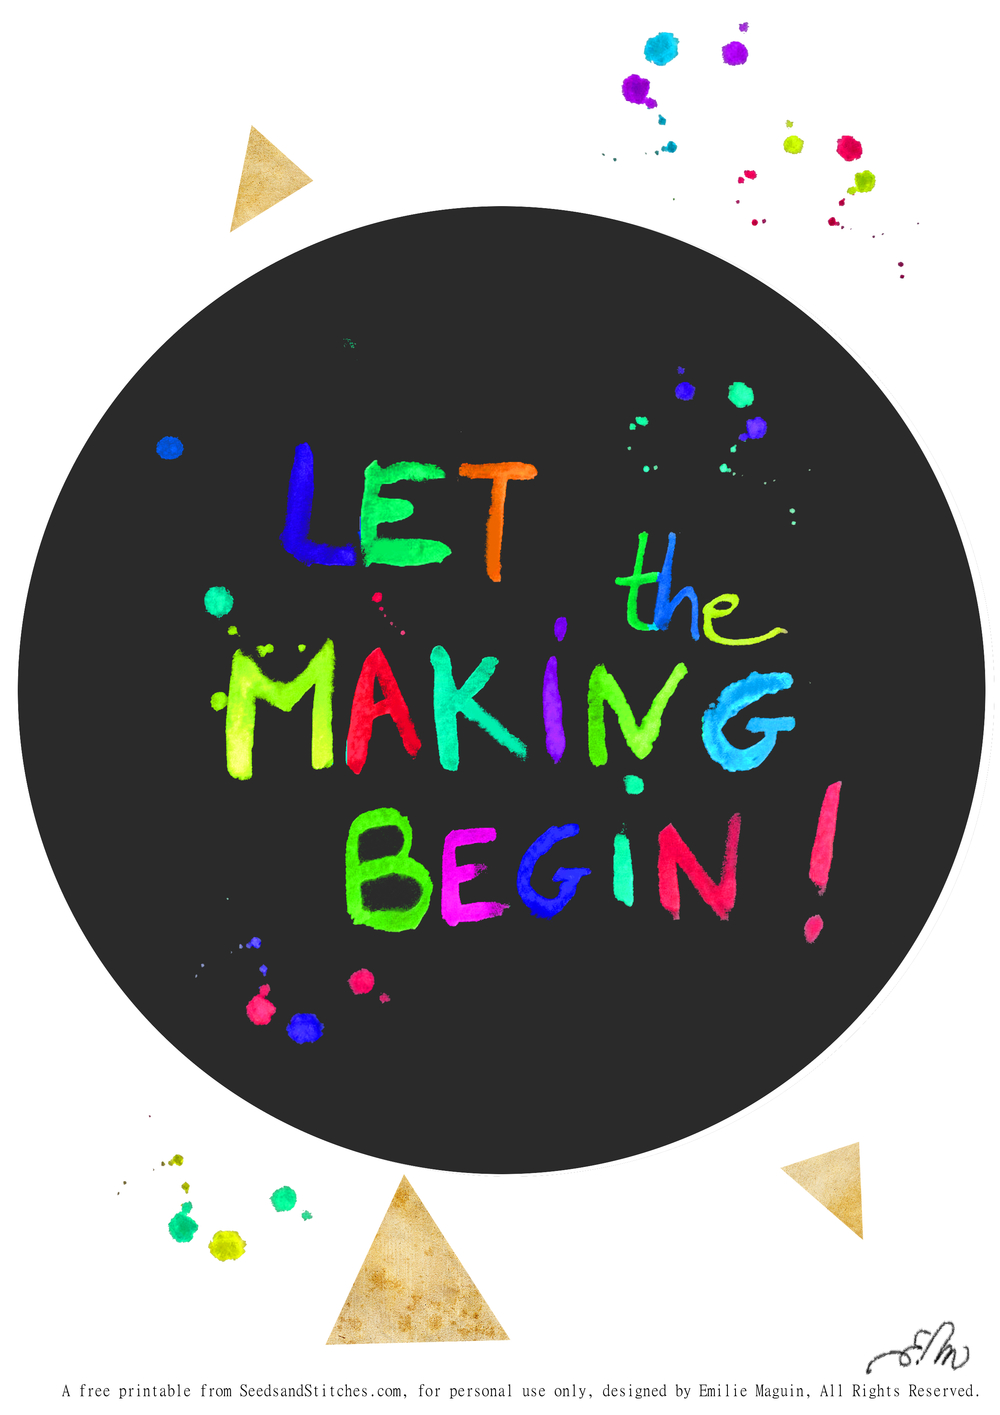 Let the making begin! by Emilie Maguin for Seeds and Stitches blog